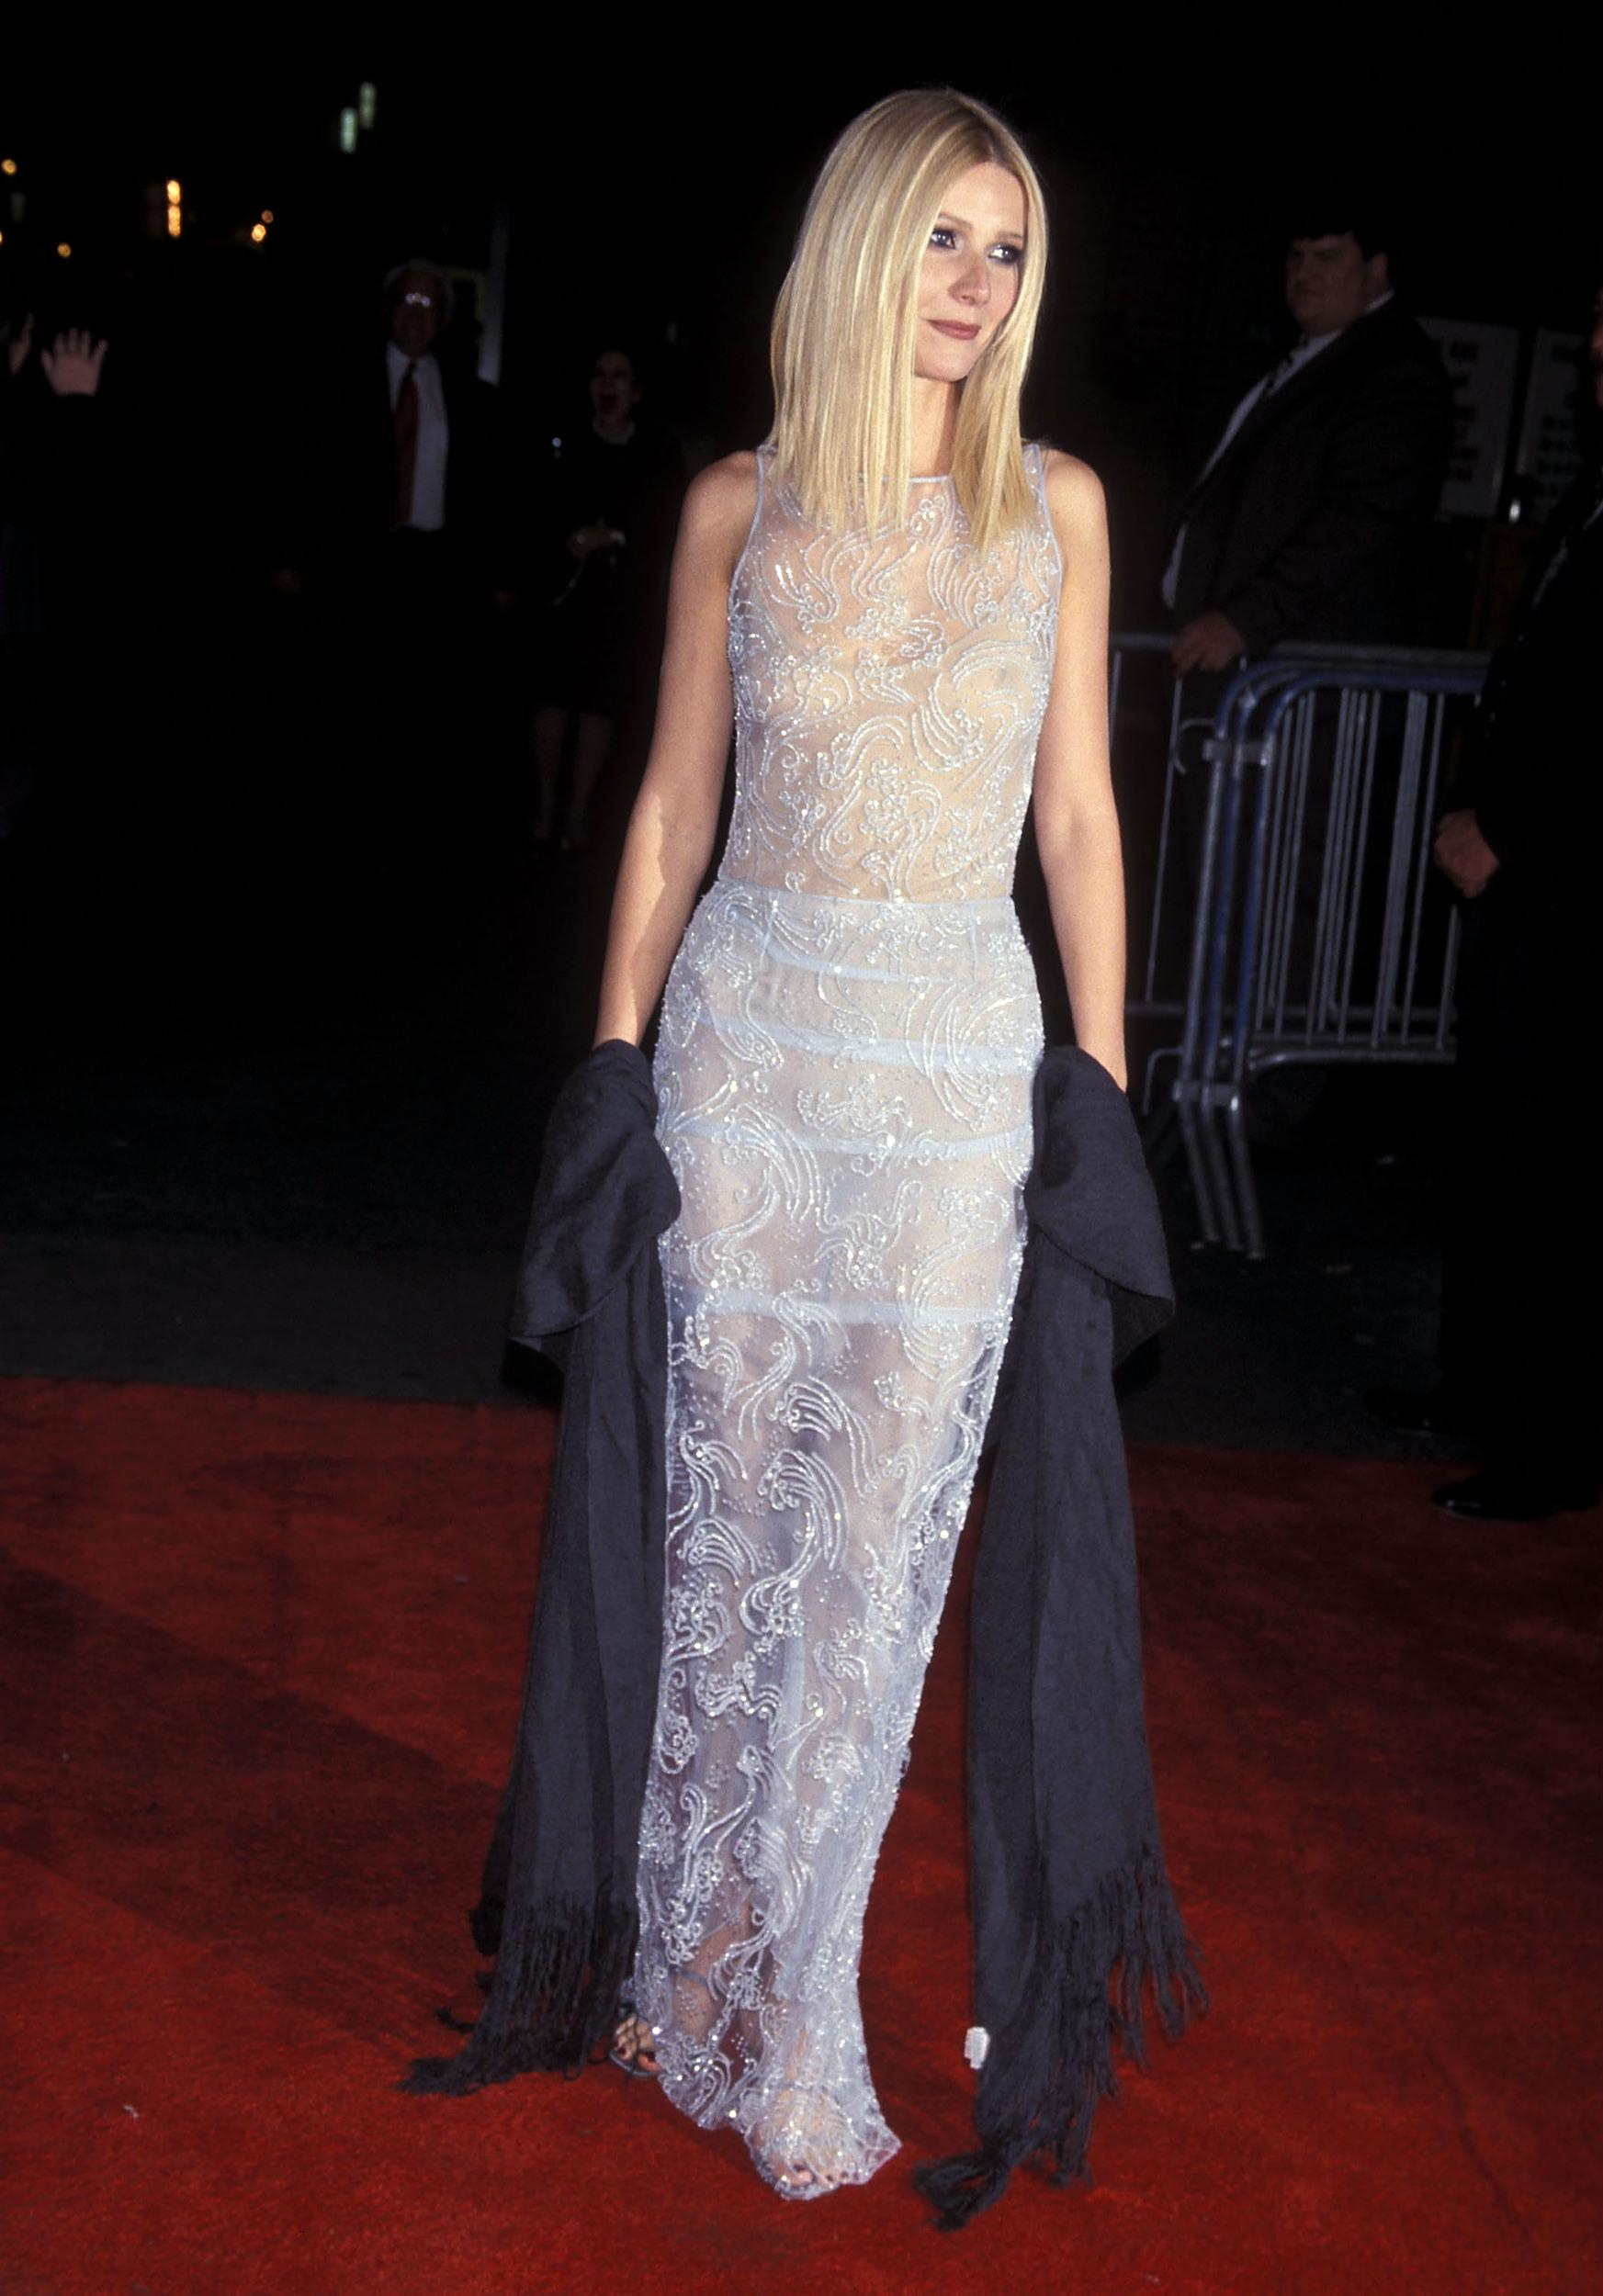 Actress Gwyneth Paltrow attends the 'Shakespeare in Love' New York City Premiere on December 3, 1998 at the Ziegfeld Theater in New York City. (Photo by Ron Galella, Ltd./WireImage)